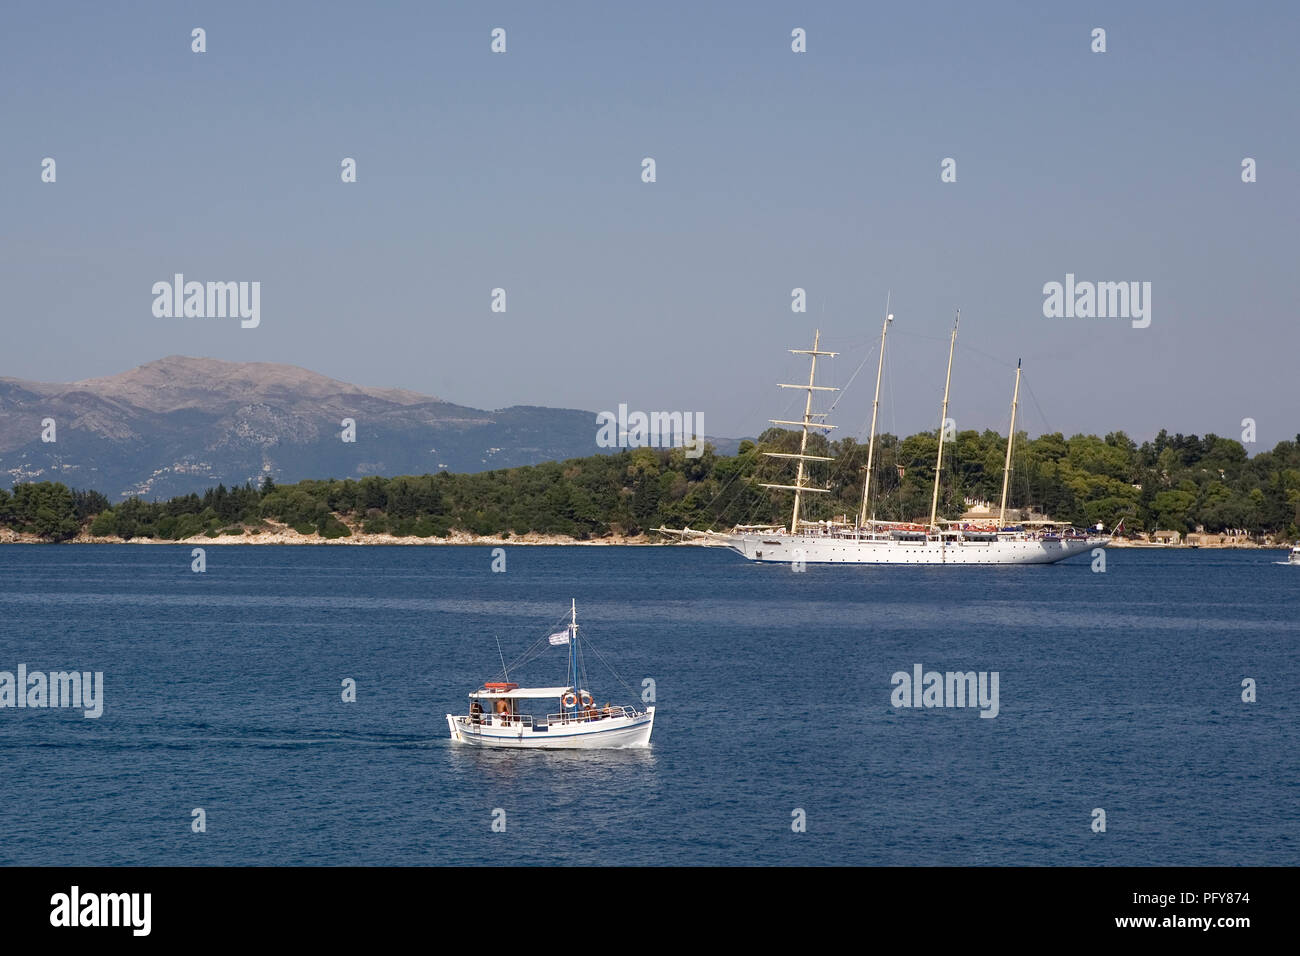 The island of Vido from Arseniou in Corfu Town, with the 'Star Clipper', a luxury cruise ship, rigged as a barquentine, entering Corfu harbour, Greece - Stock Image